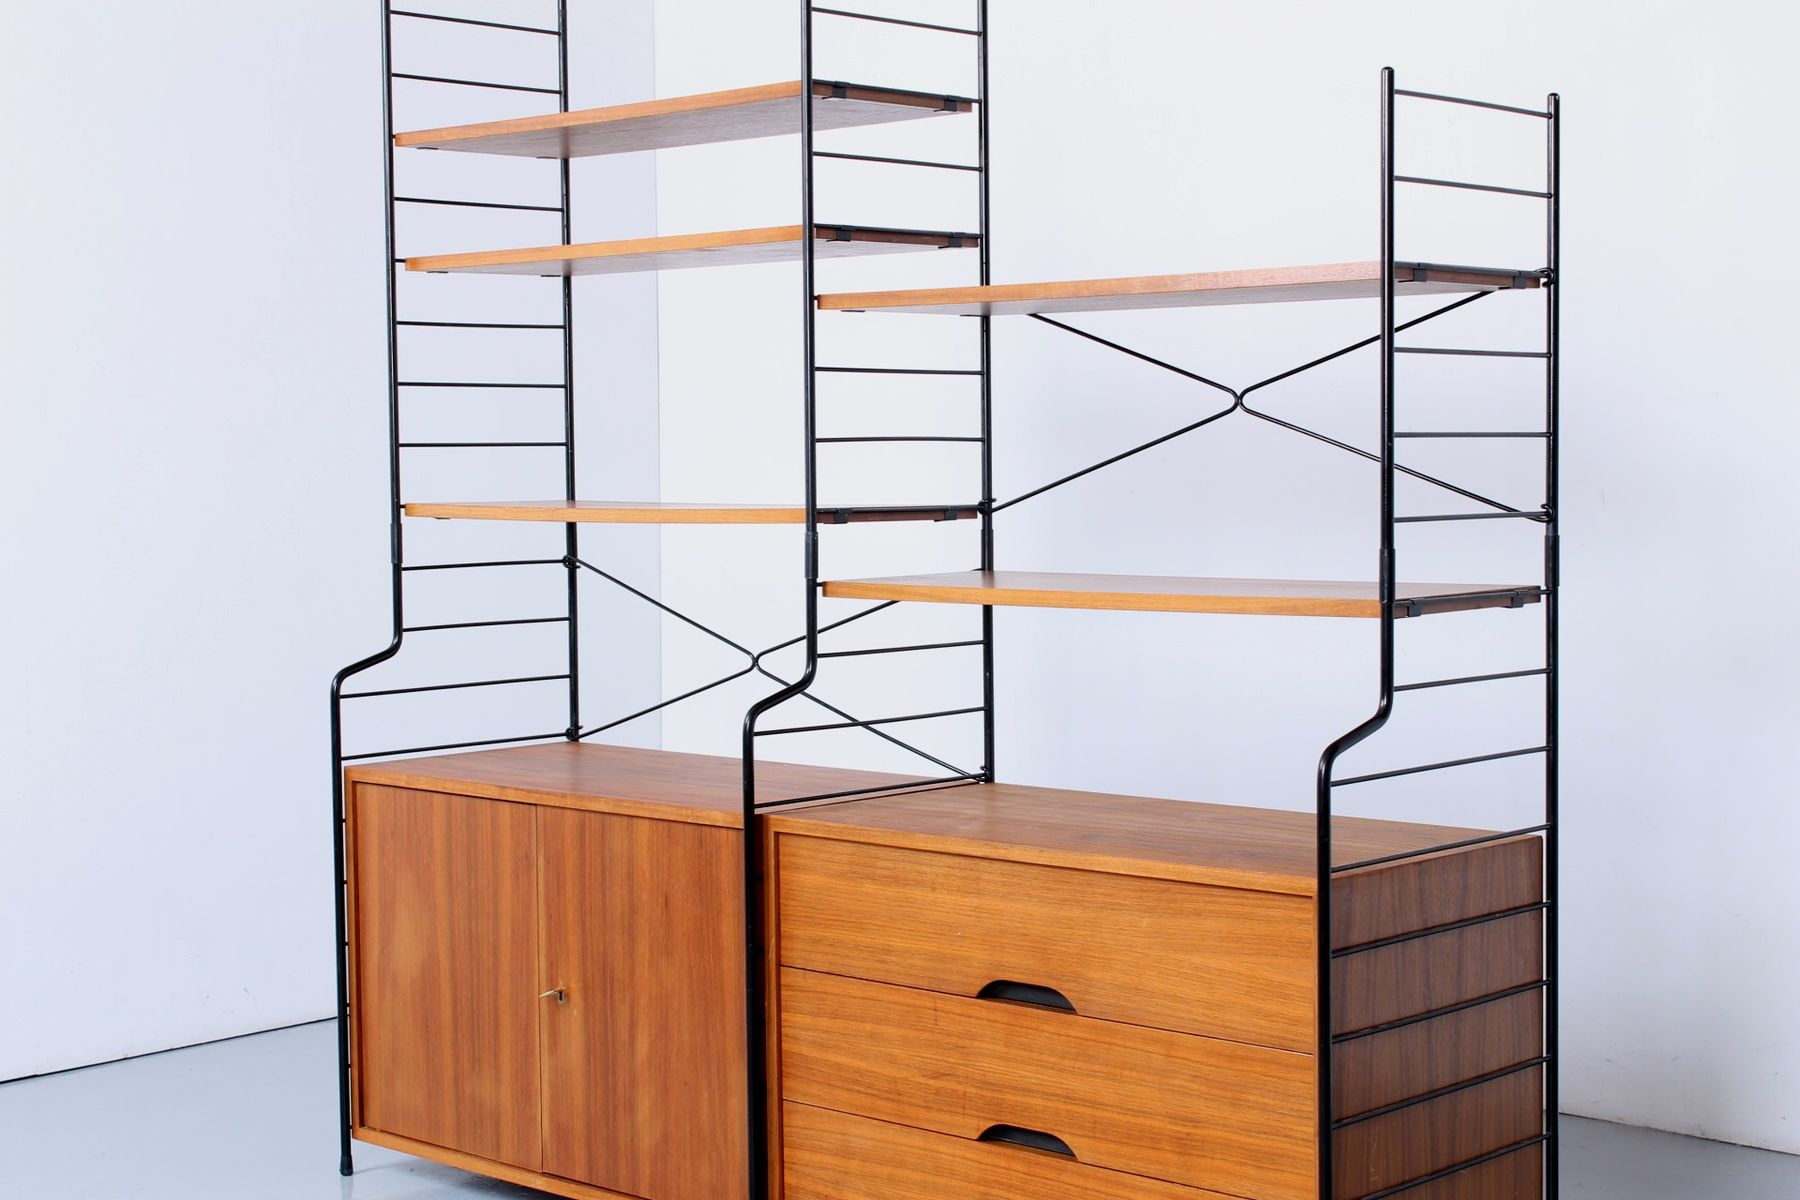 biblioth que en teck avec tiroir autoportant et cordon en m tal 1950s en vente sur pamono. Black Bedroom Furniture Sets. Home Design Ideas